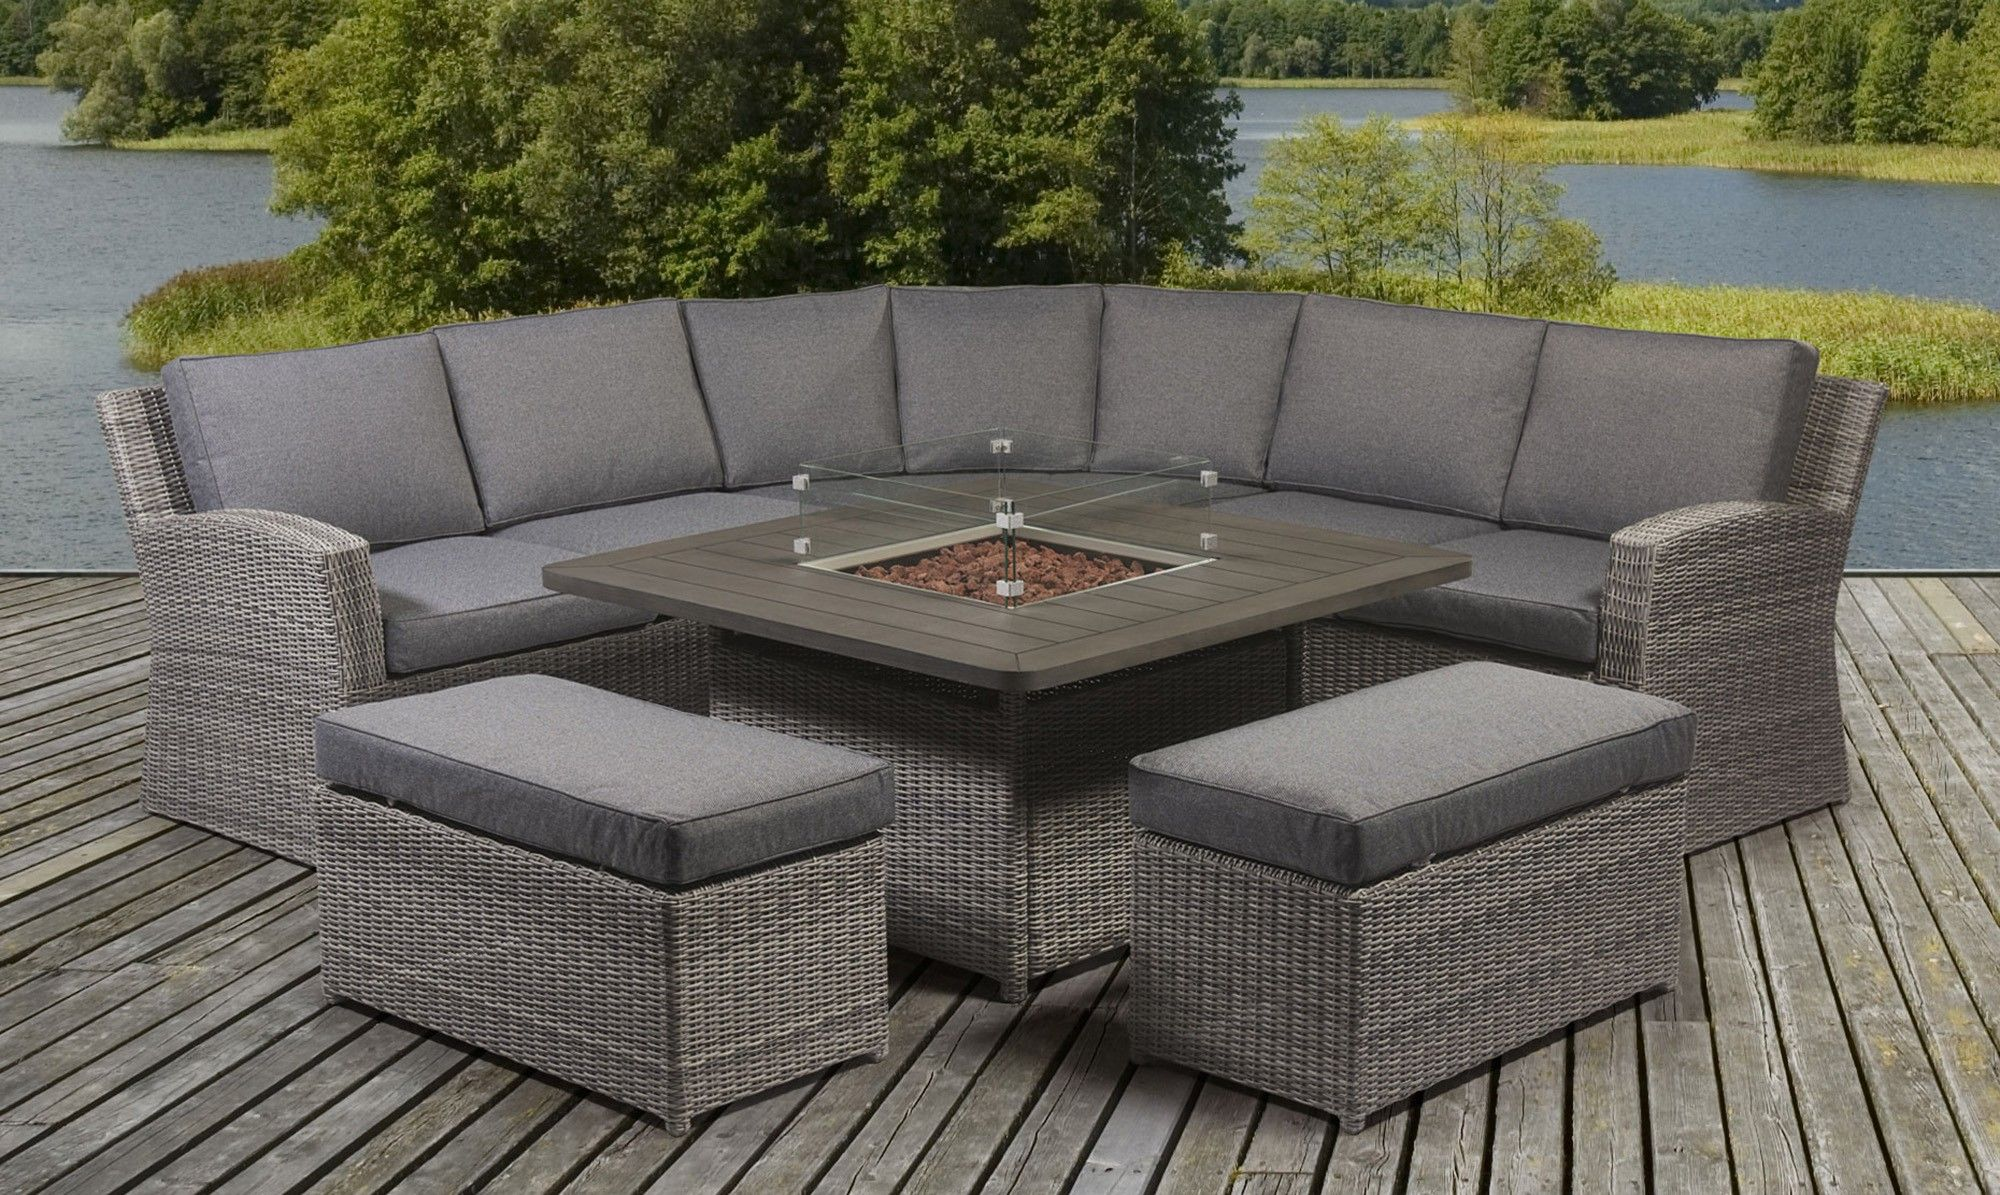 Rattan Corner Garden Sofa Dining Table Set